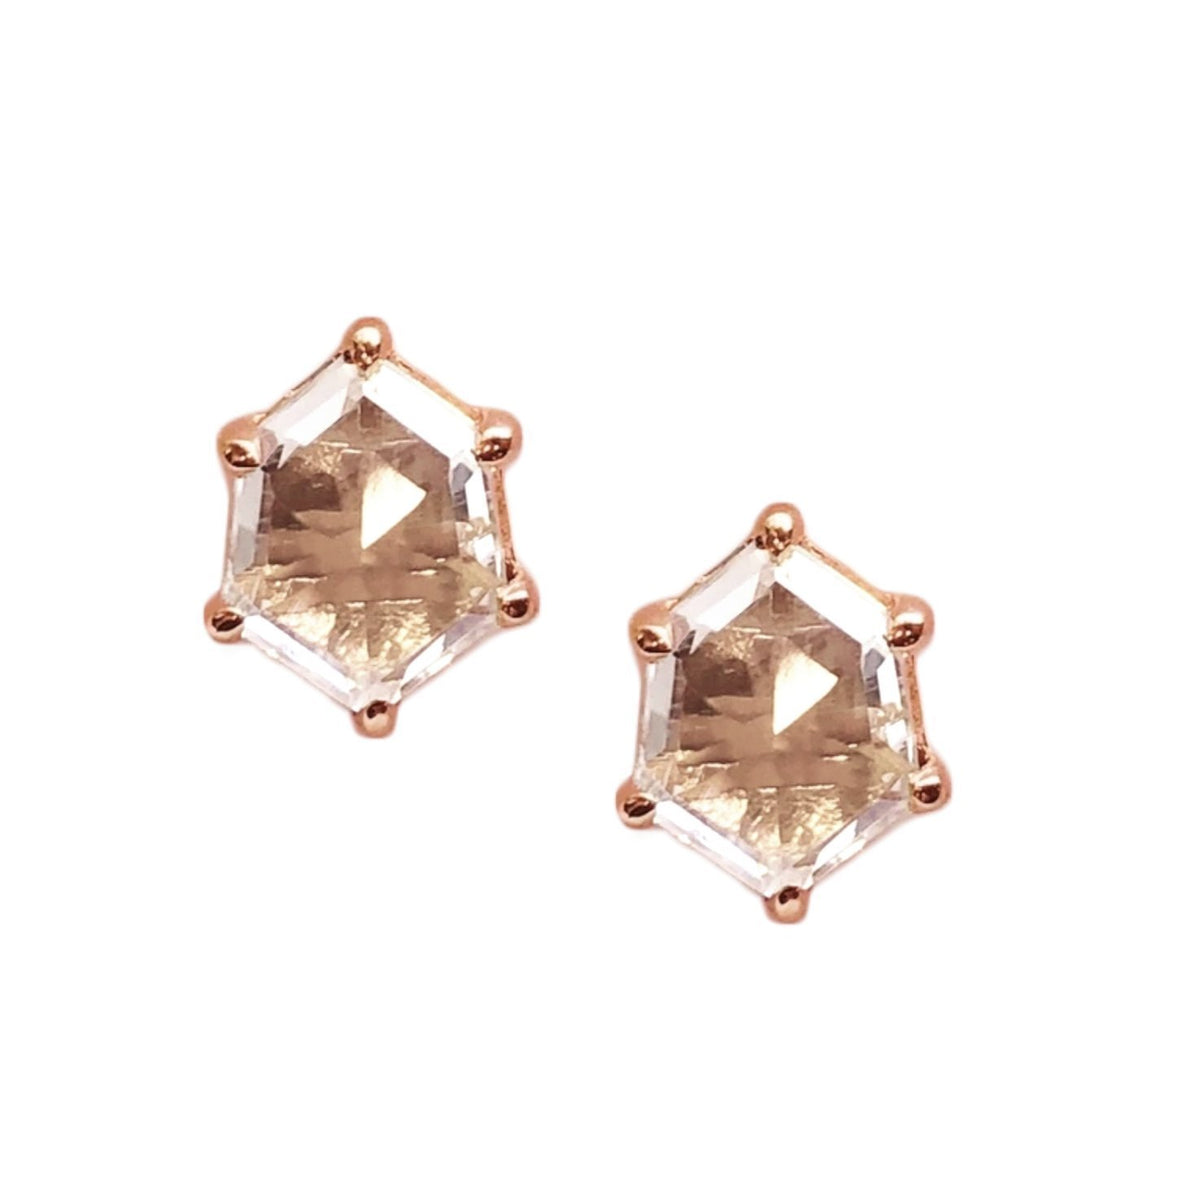 MINI HONOUR SHIELD STUD EARRINGS - WHITE TOPAZ & ROSE GOLD - SO PRETTY CARA COTTER